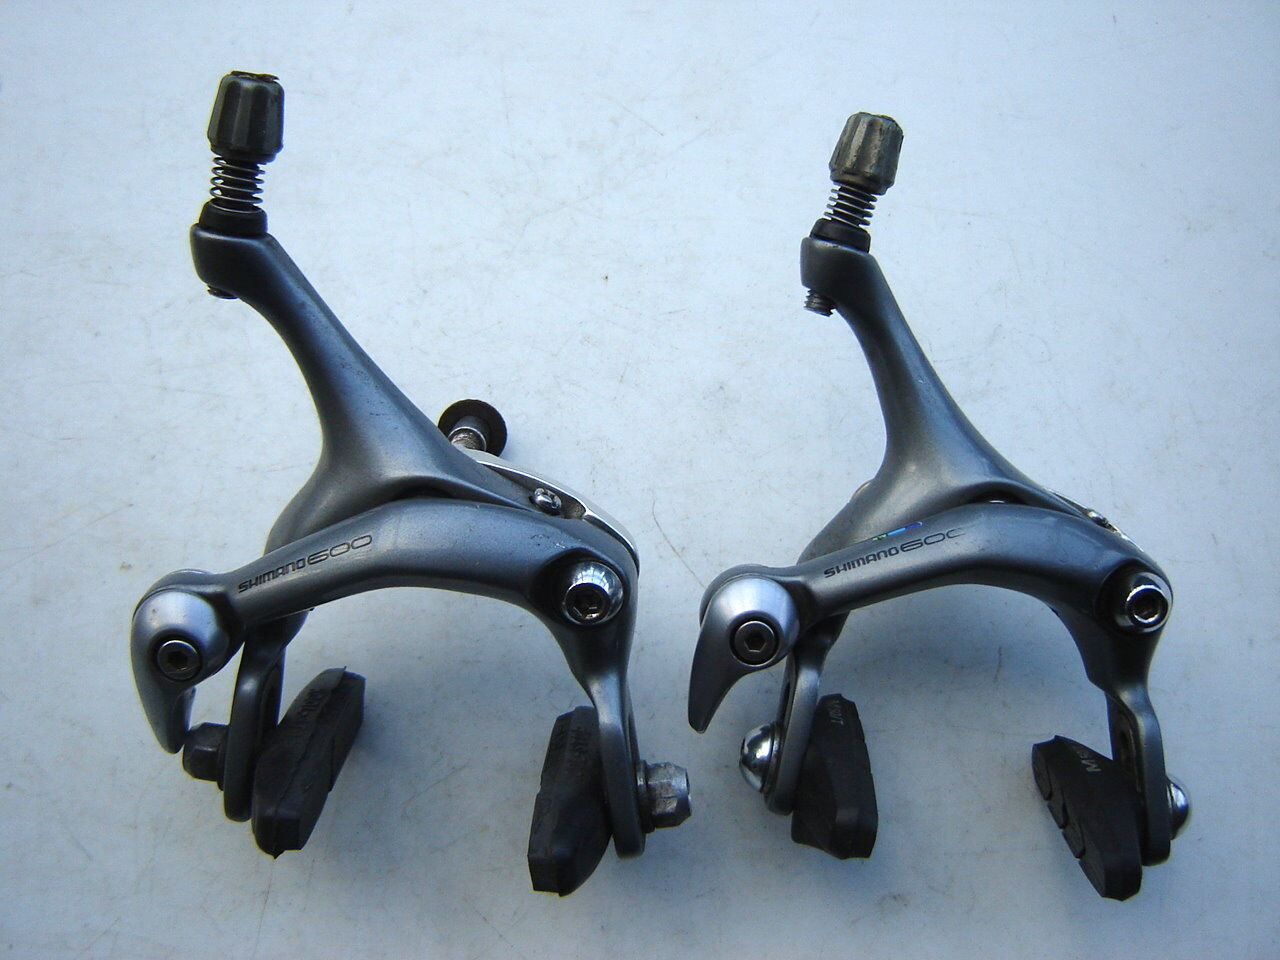 SHIMANO 600 ULTEGRA  BR-6403 BRAKE CALIPERS - 1987 - VGC  for cheap